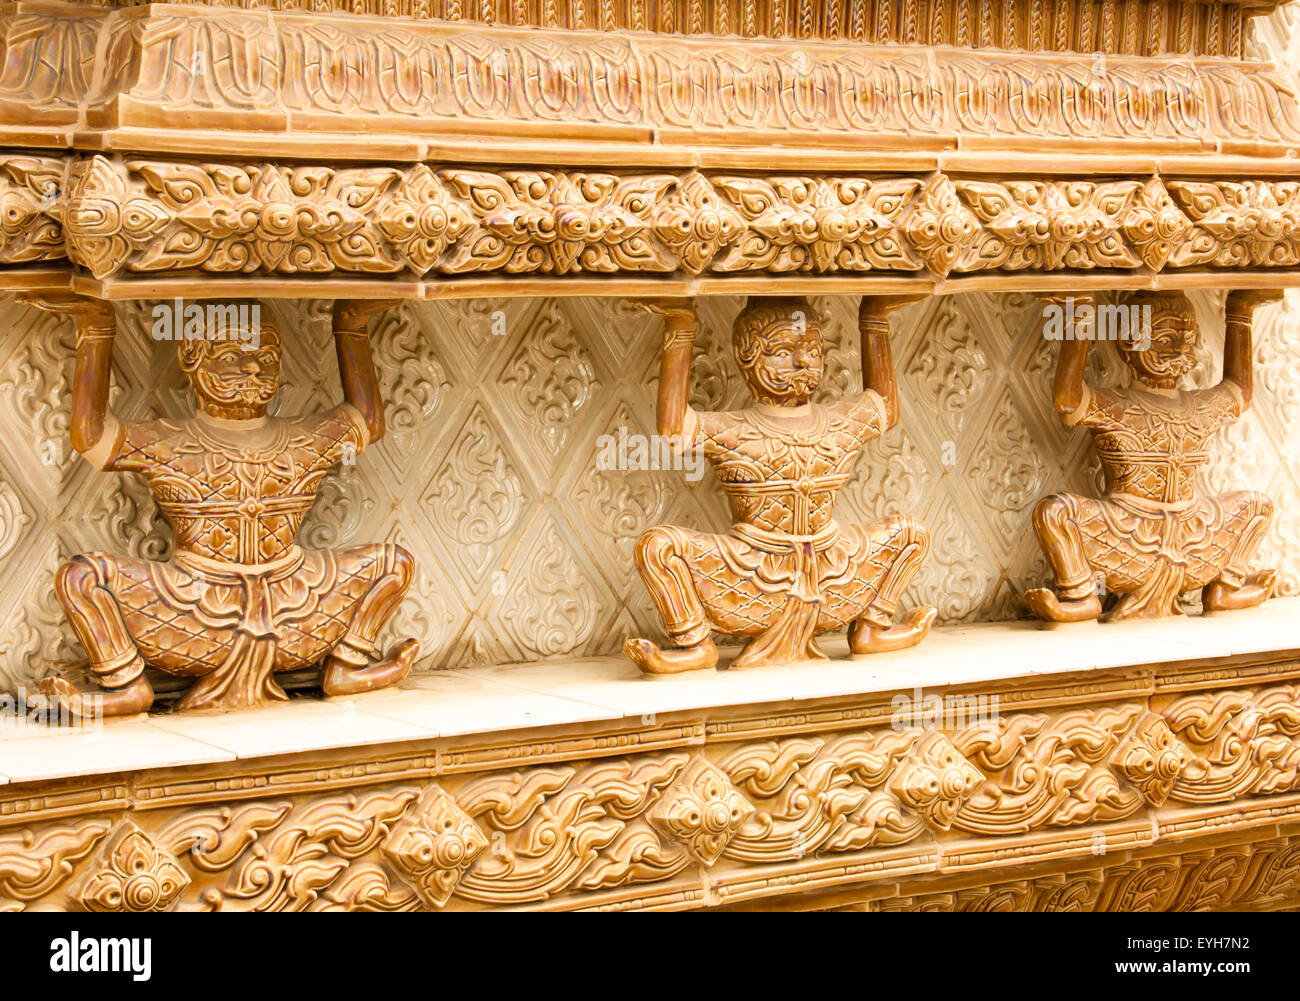 Wall Sculptures Stock Photos & Wall Sculptures Stock Images - Alamy